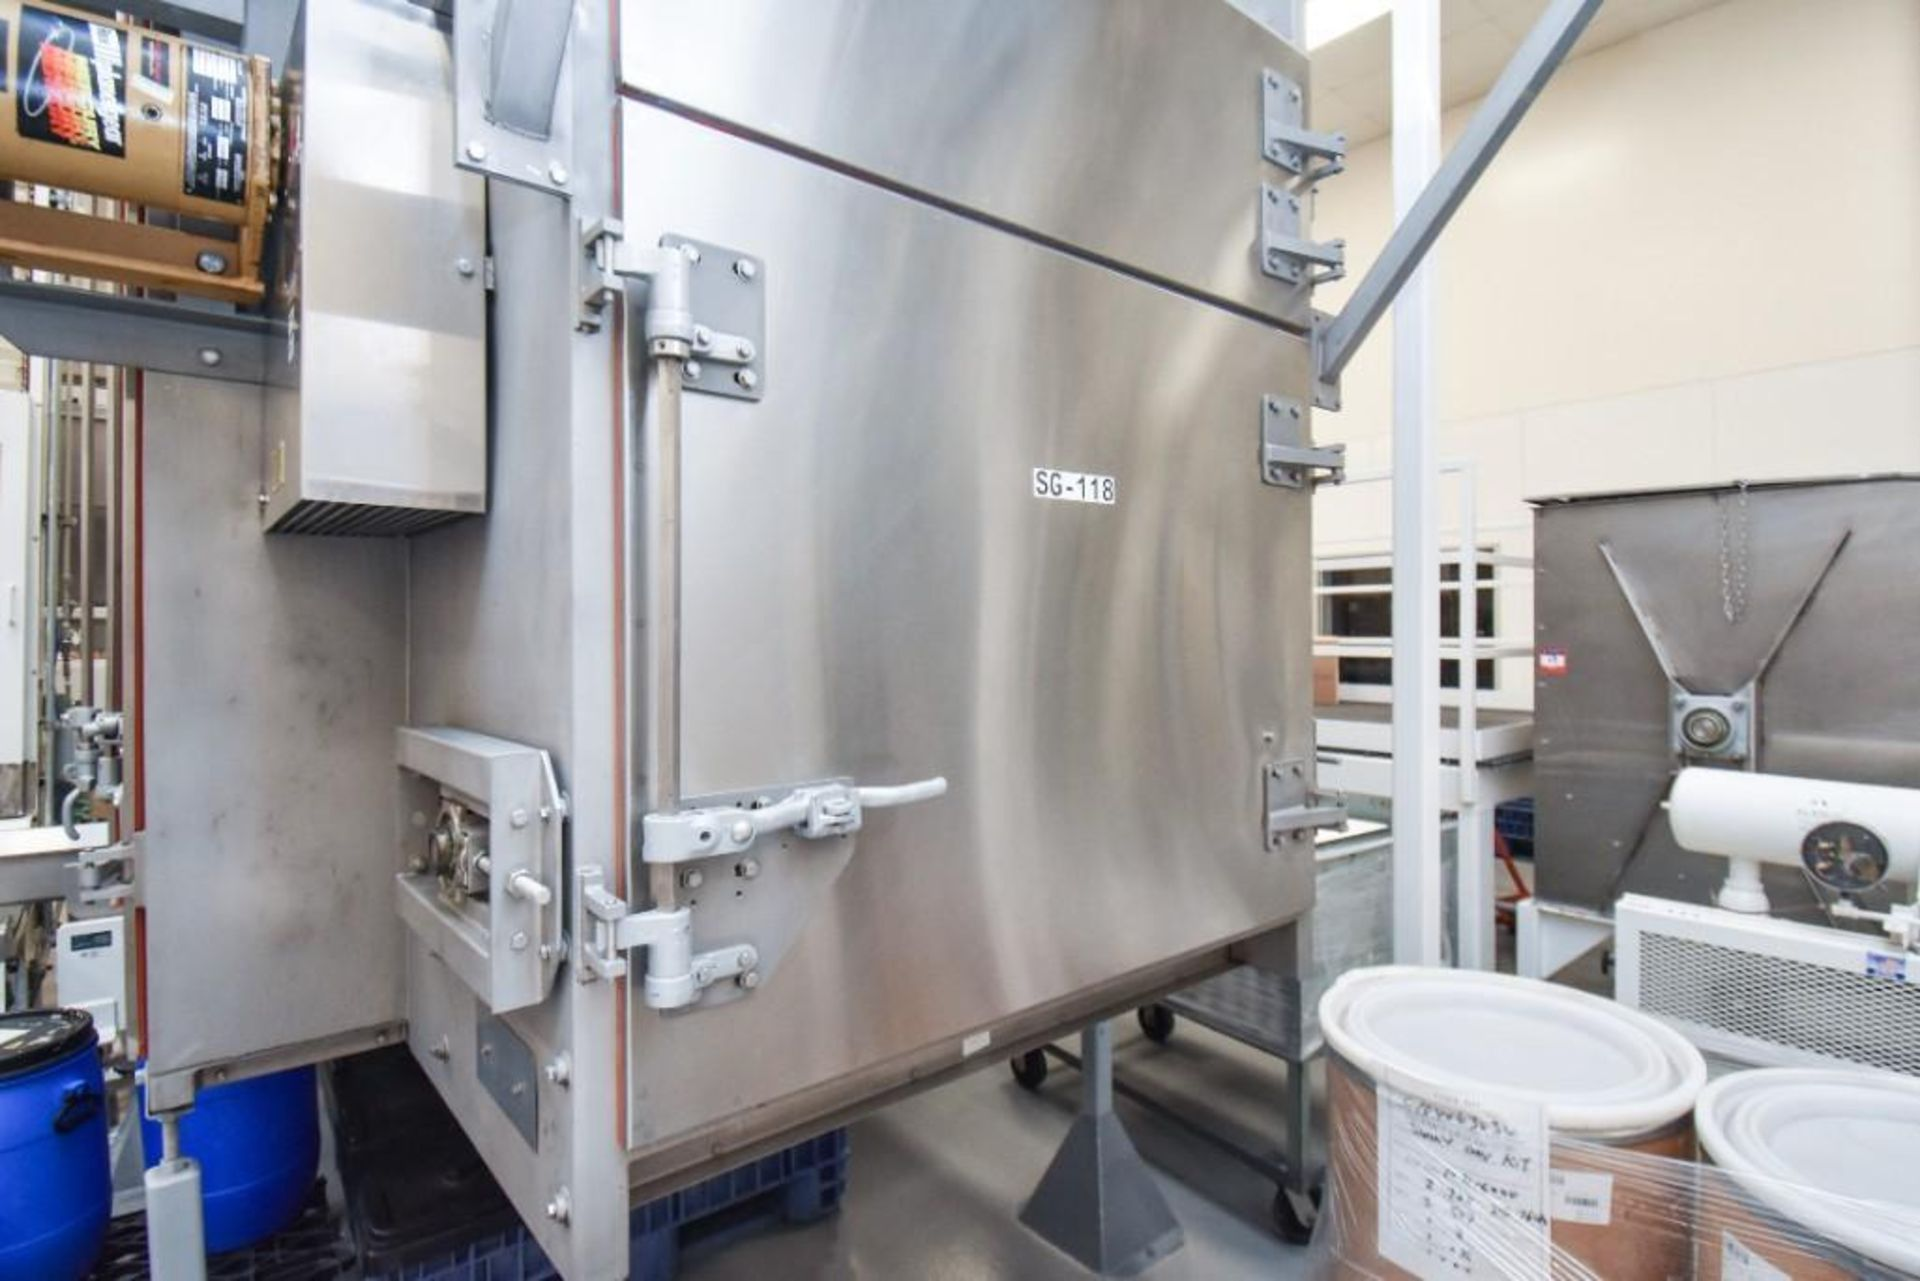 Wenger Dryer Oven Series IV 4800 - Image 4 of 7